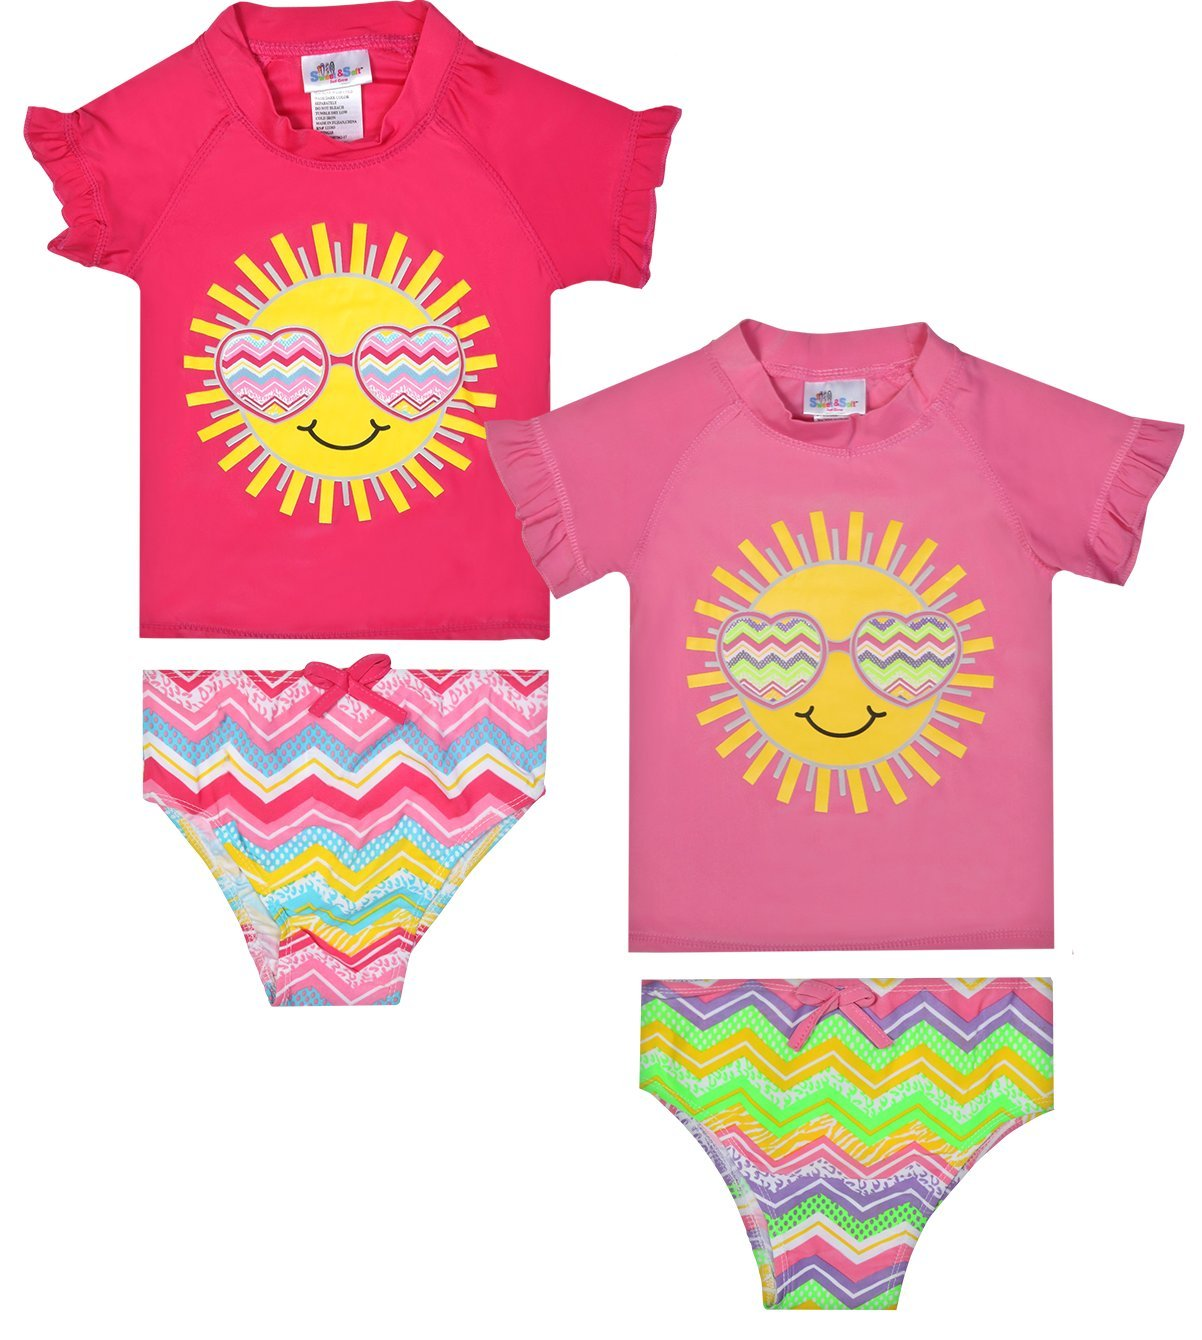 Sweet & Soft Baby Girl's 4-Piece Rash Guard and Bikini Swimsuit Sets, Sunglasses, Toddler (2T)' by Sweet & Soft